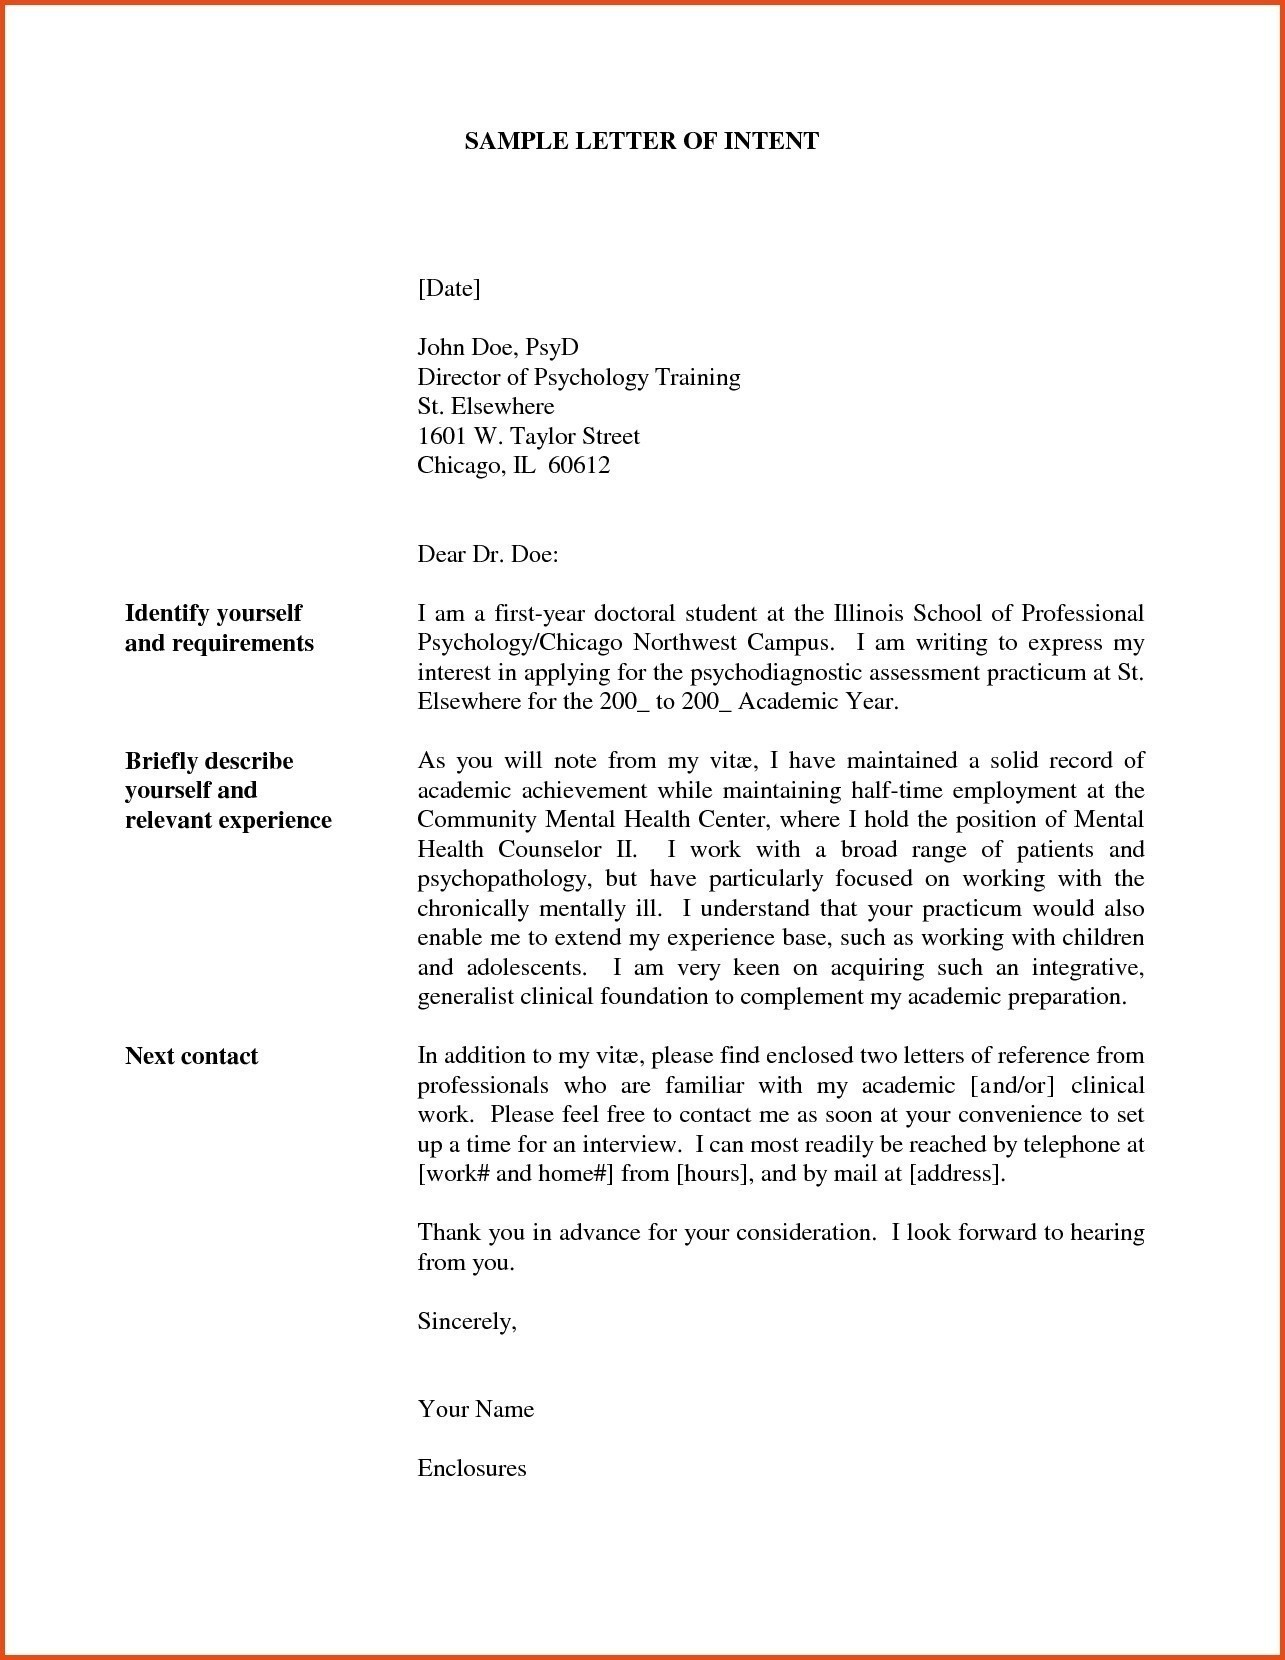 Free Letter Of Intent for A Job Template - Letter Intention Job New Letter Intent Template Job New